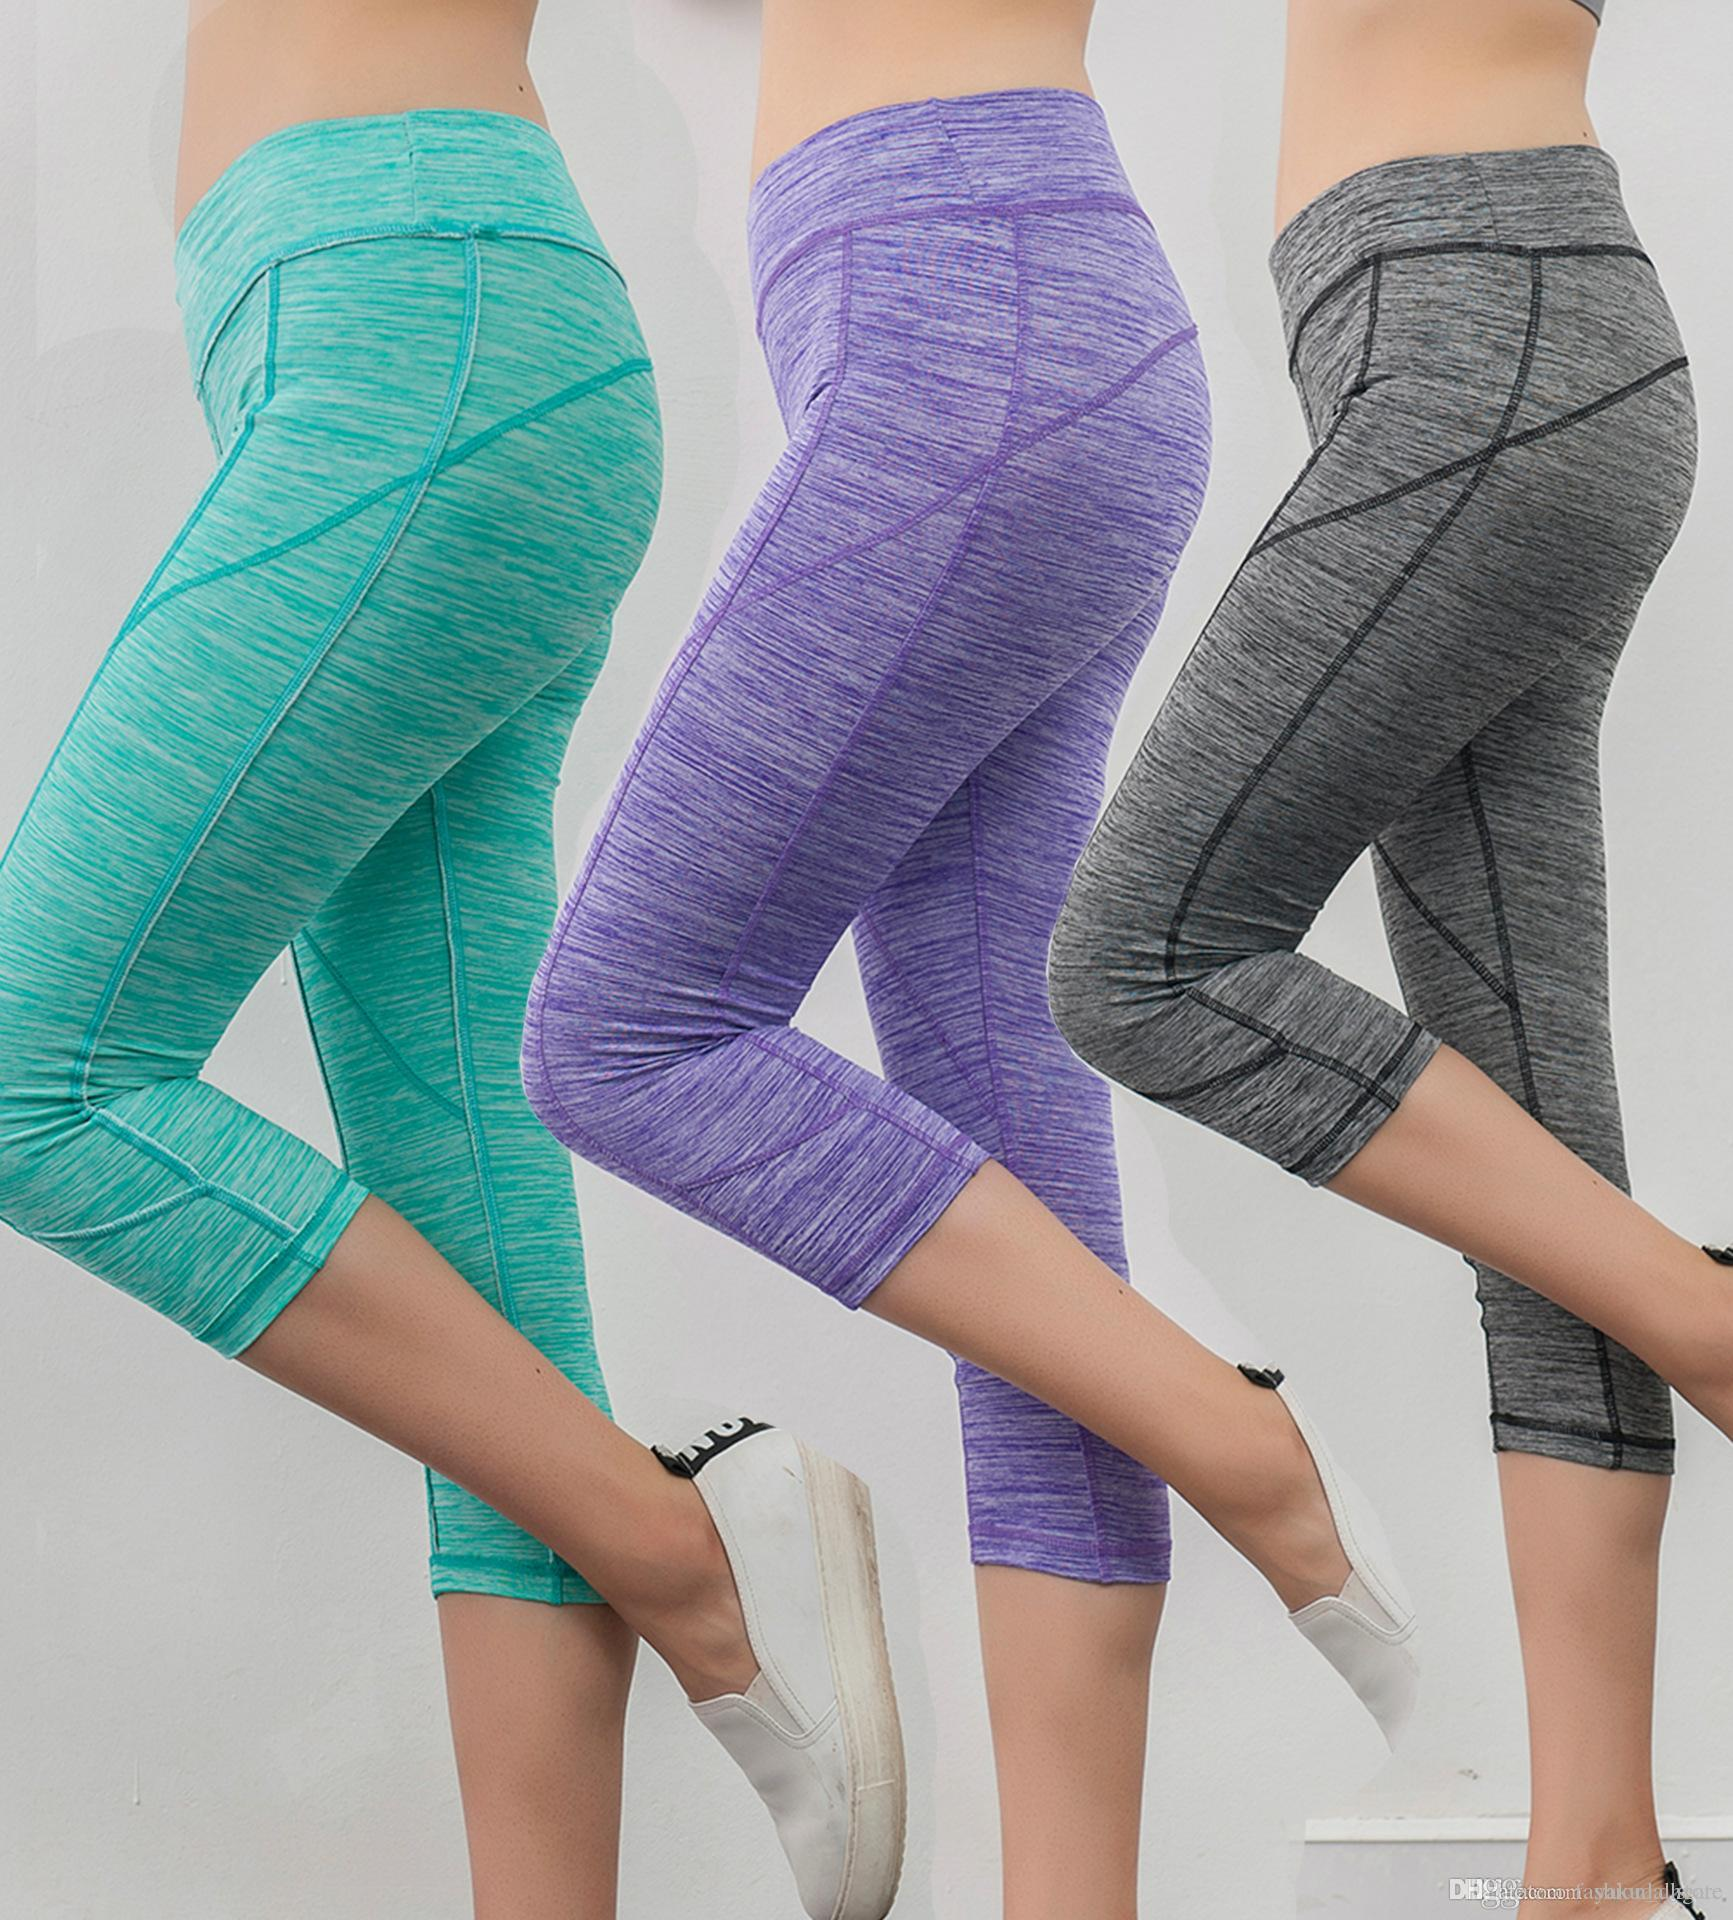 2017 Candy Colors Sport Yoga Pants Workout Running Exercise High Waist Elastic Quick Dry Casual Fitness Leggings 5 Colors women's cloth